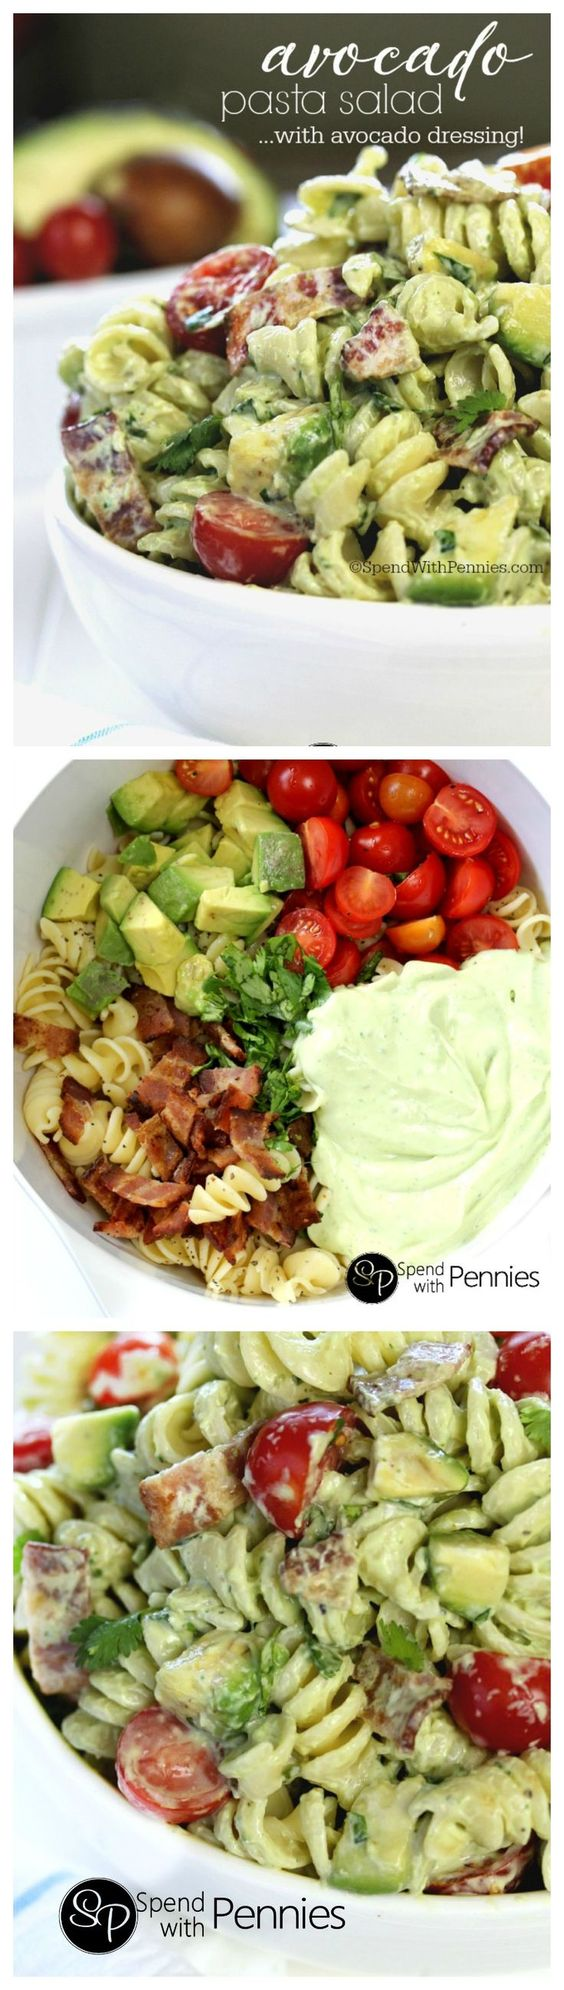 Avocado Pasta Salad with Avocado Dressing Recipe via Spend With Pennies - Cold pasta salads are the perfect & satisfying quick dinner or lunch! This delicious pasta salad recipe is loaded with avocados, crispy bacon & juicy cherry tomatoes tossed in a homemade avocado dressing! Easy Pasta Salad Recipes - The BEST Yummy Barbecue Side Dishes, Potluck Favorites and Summer Dinner Party Crowd Pleasers #pastasaladrecipes #pastasalads #pastasalad #easypastasalad #potluckrecipes #potluck #partyfood #4thofJuly #picnicfood #sidedishrecipes #easysidedishes #cookoutfood #barbecuefood #blockparty